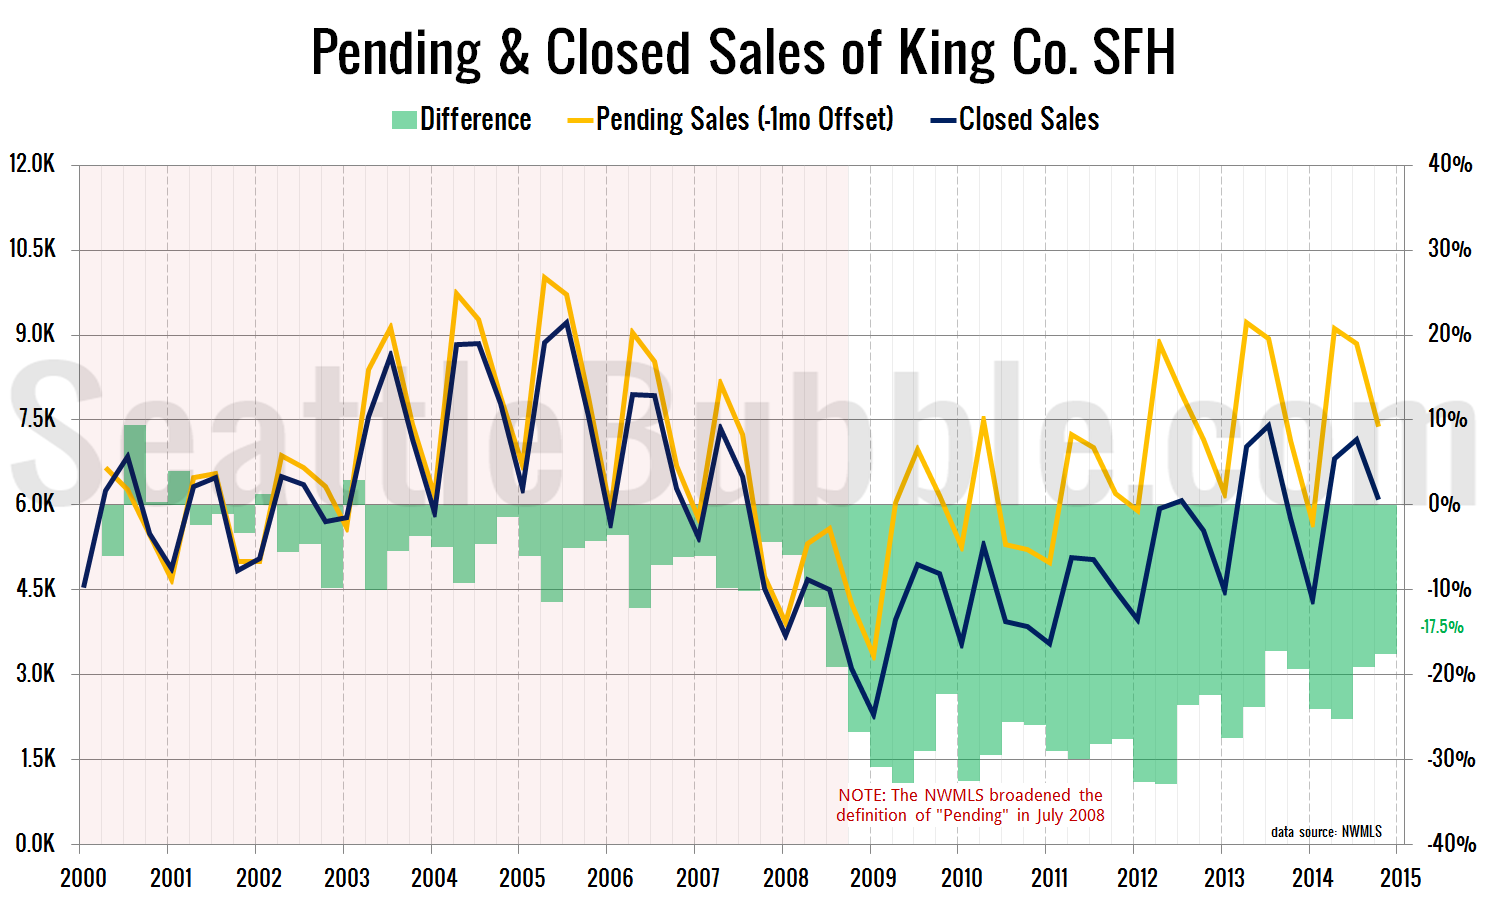 Pending-Closed-2014-Q4-wide